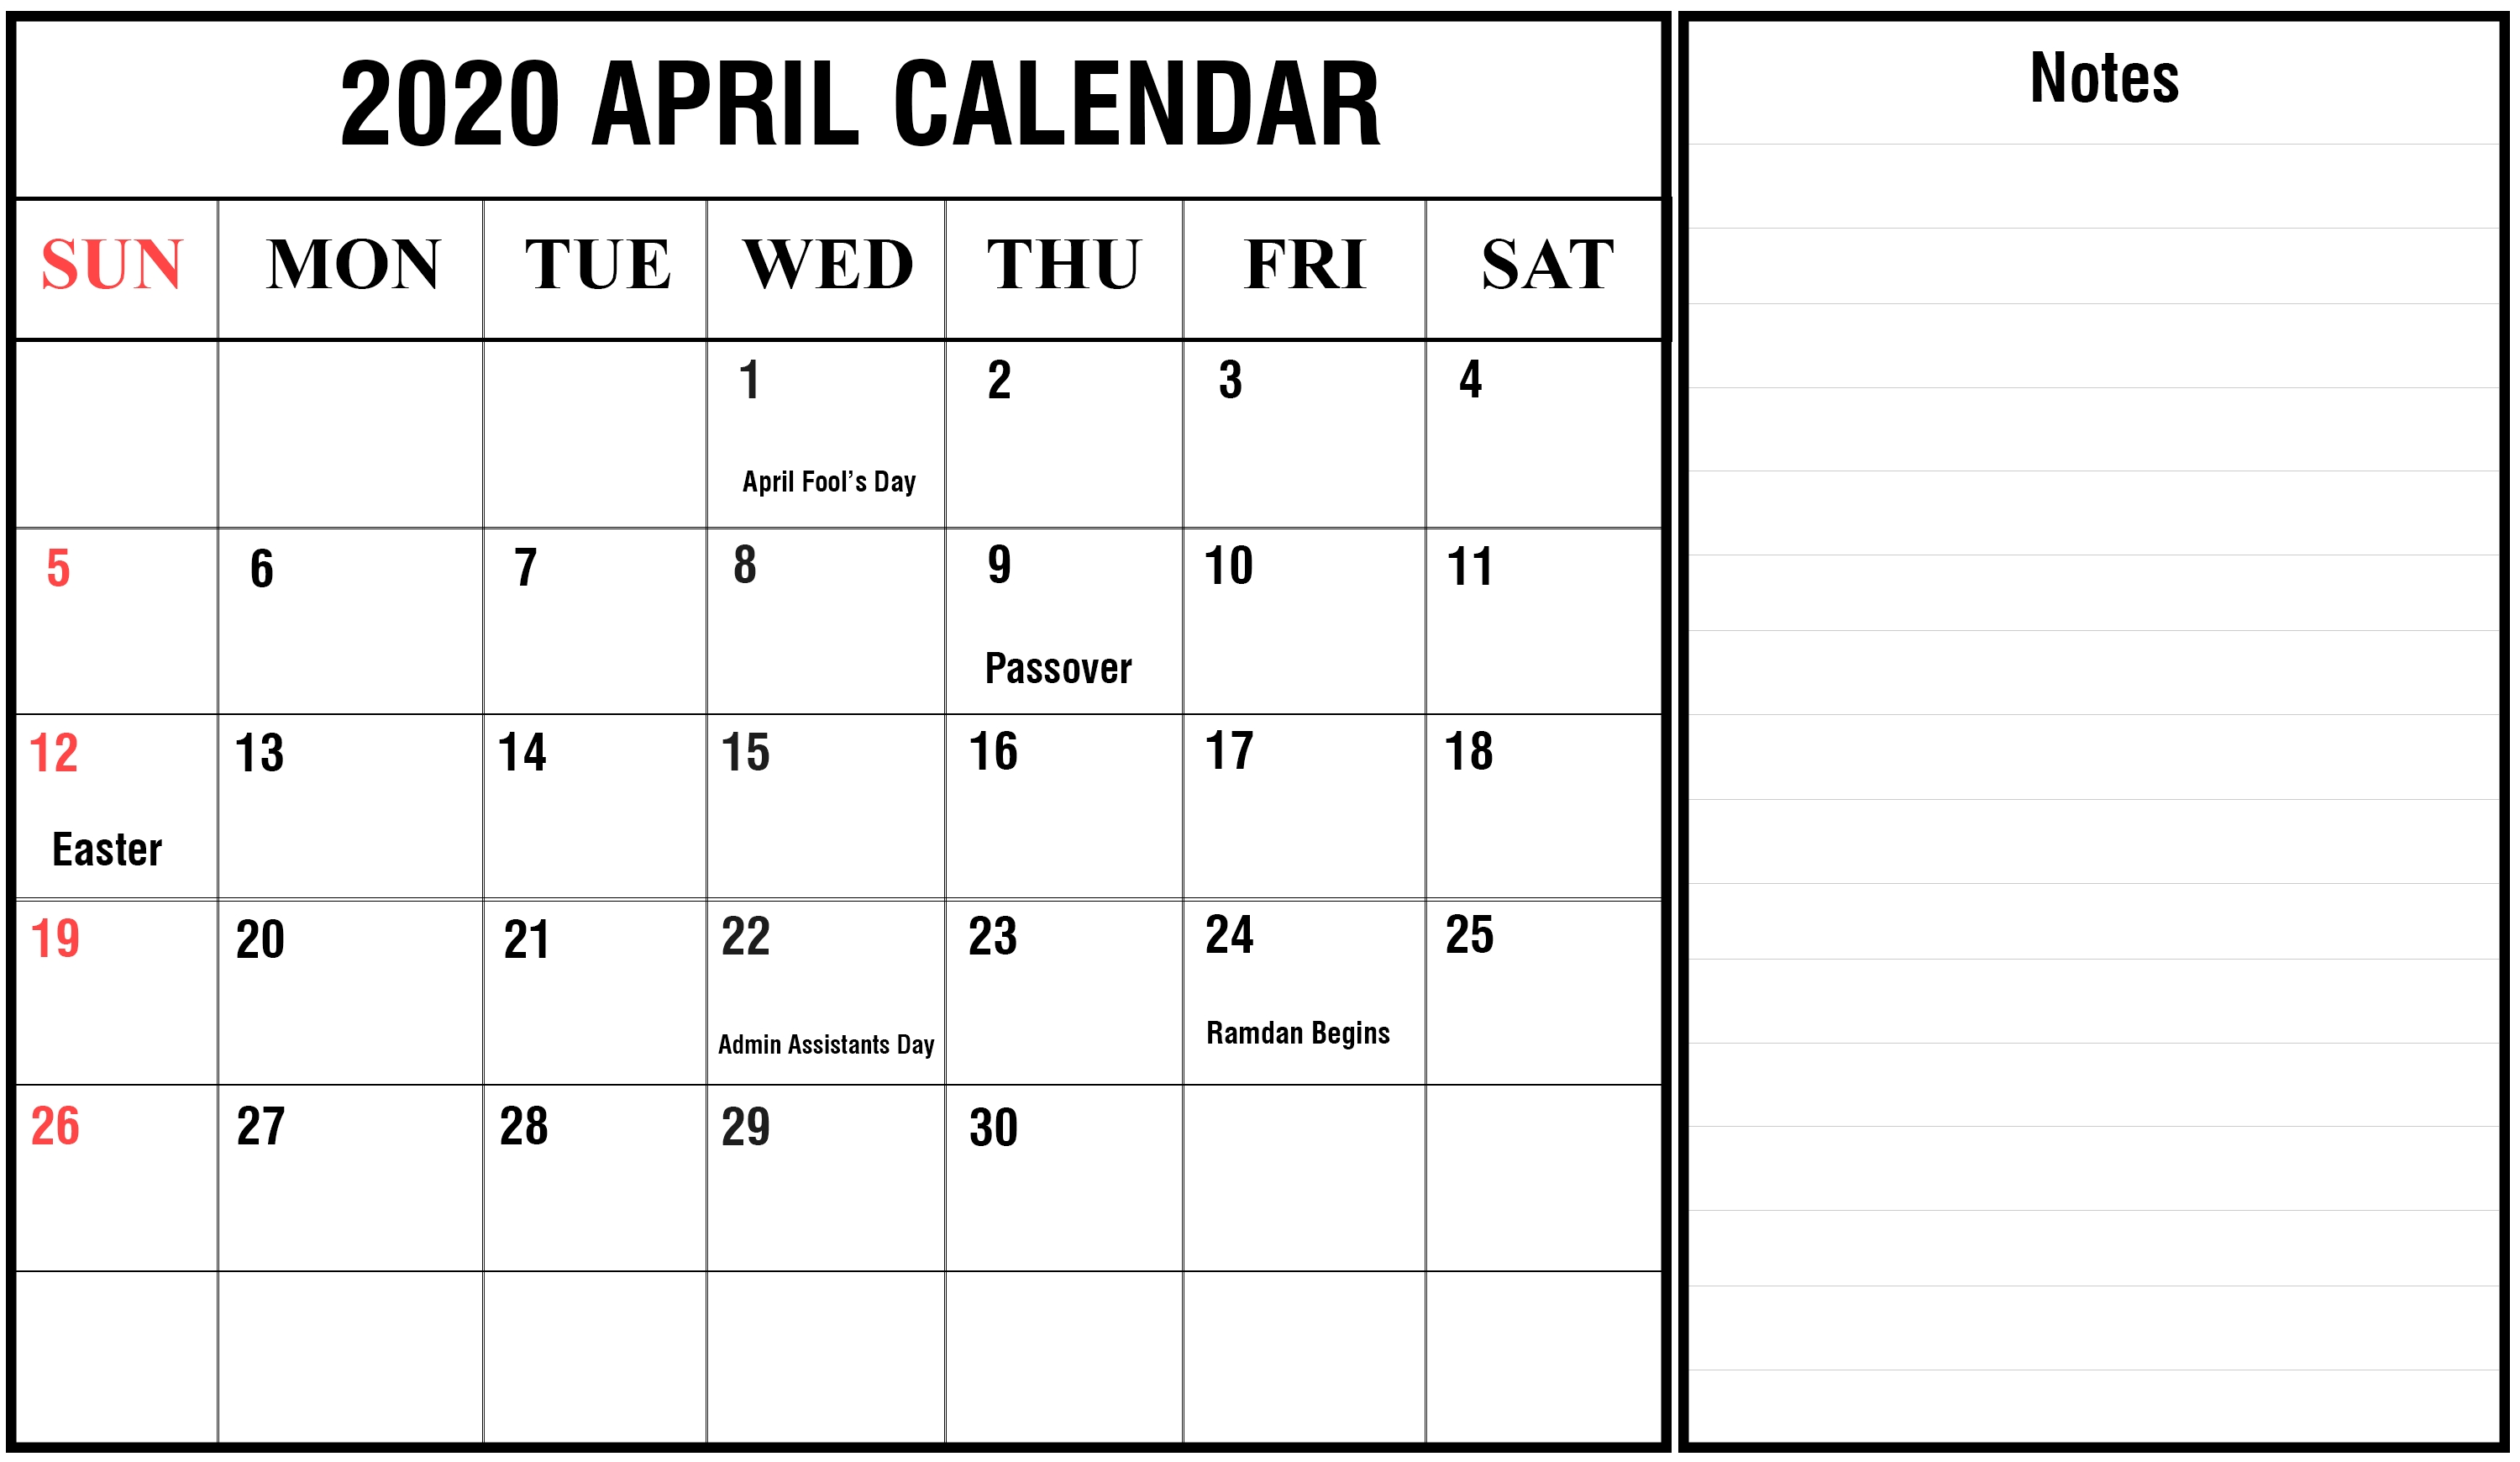 Free April Calendar 2020 Printable Editable Template for Printable Calendar 2020 Monthly With Holidays